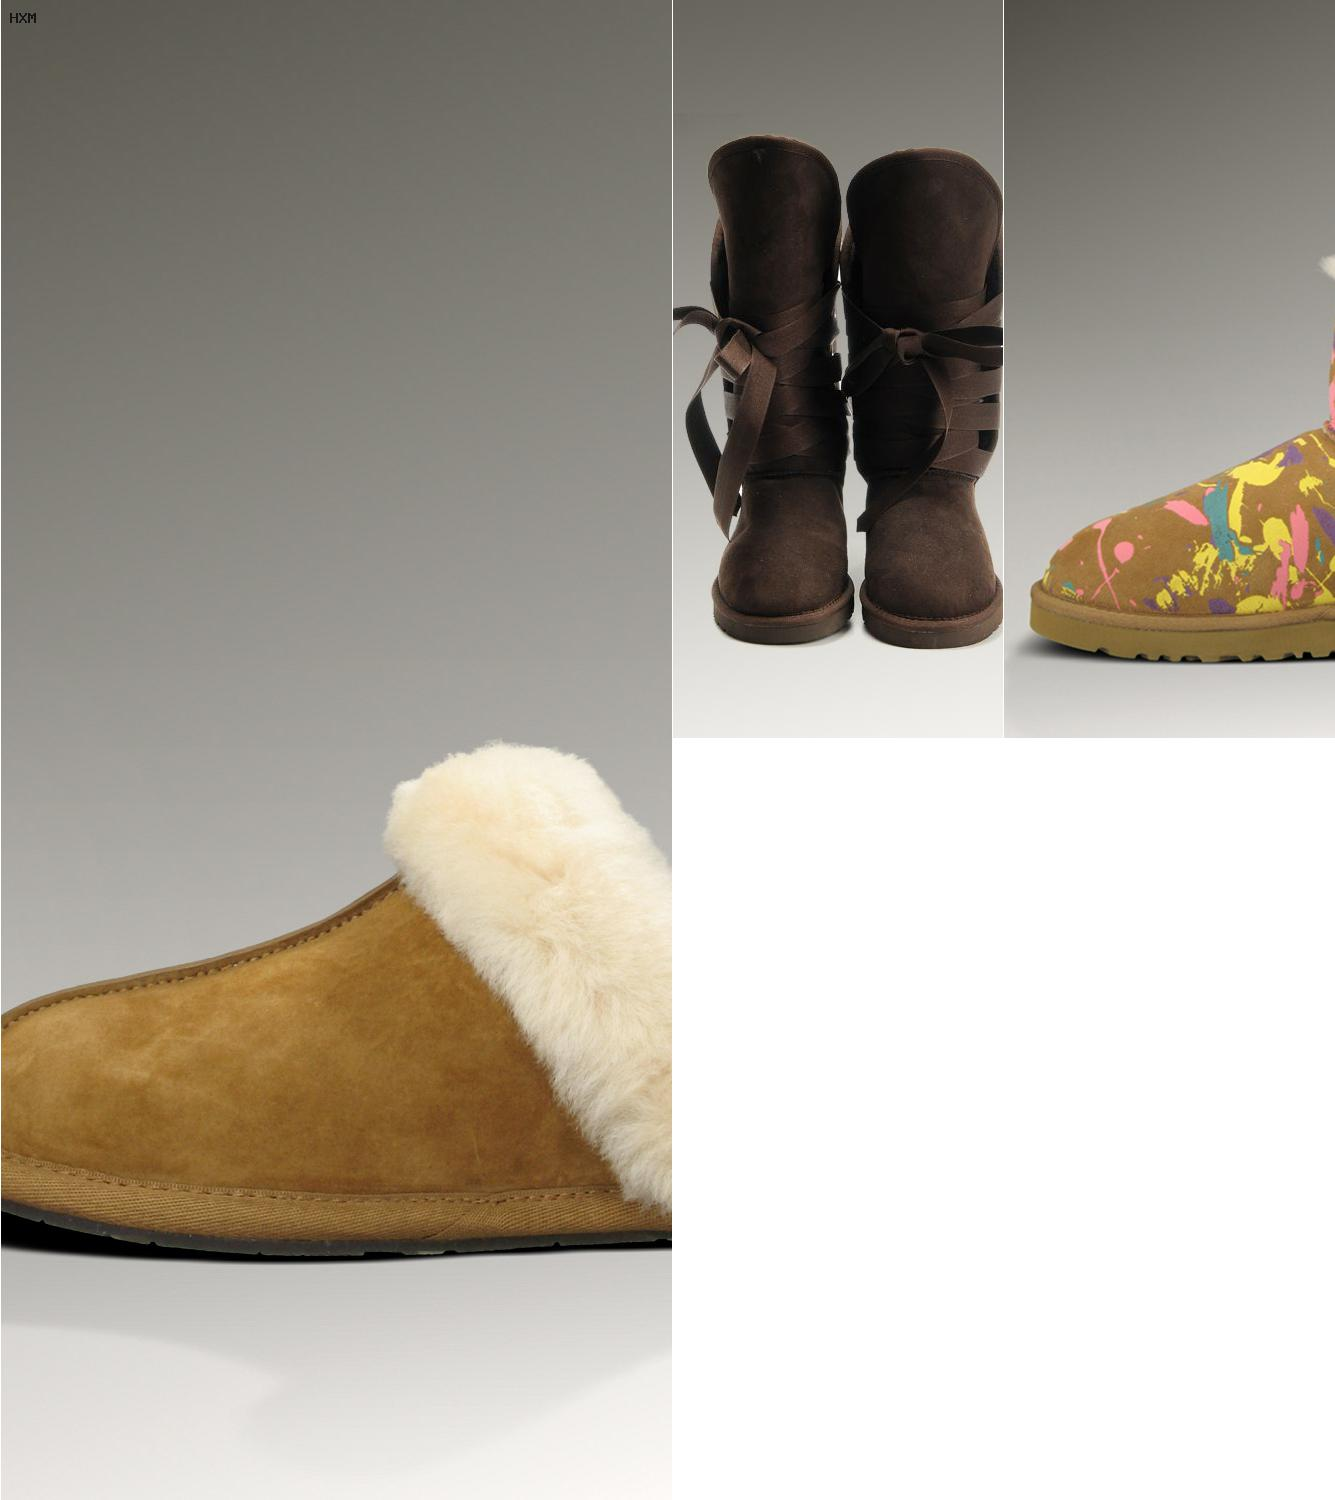 tong ugg homme